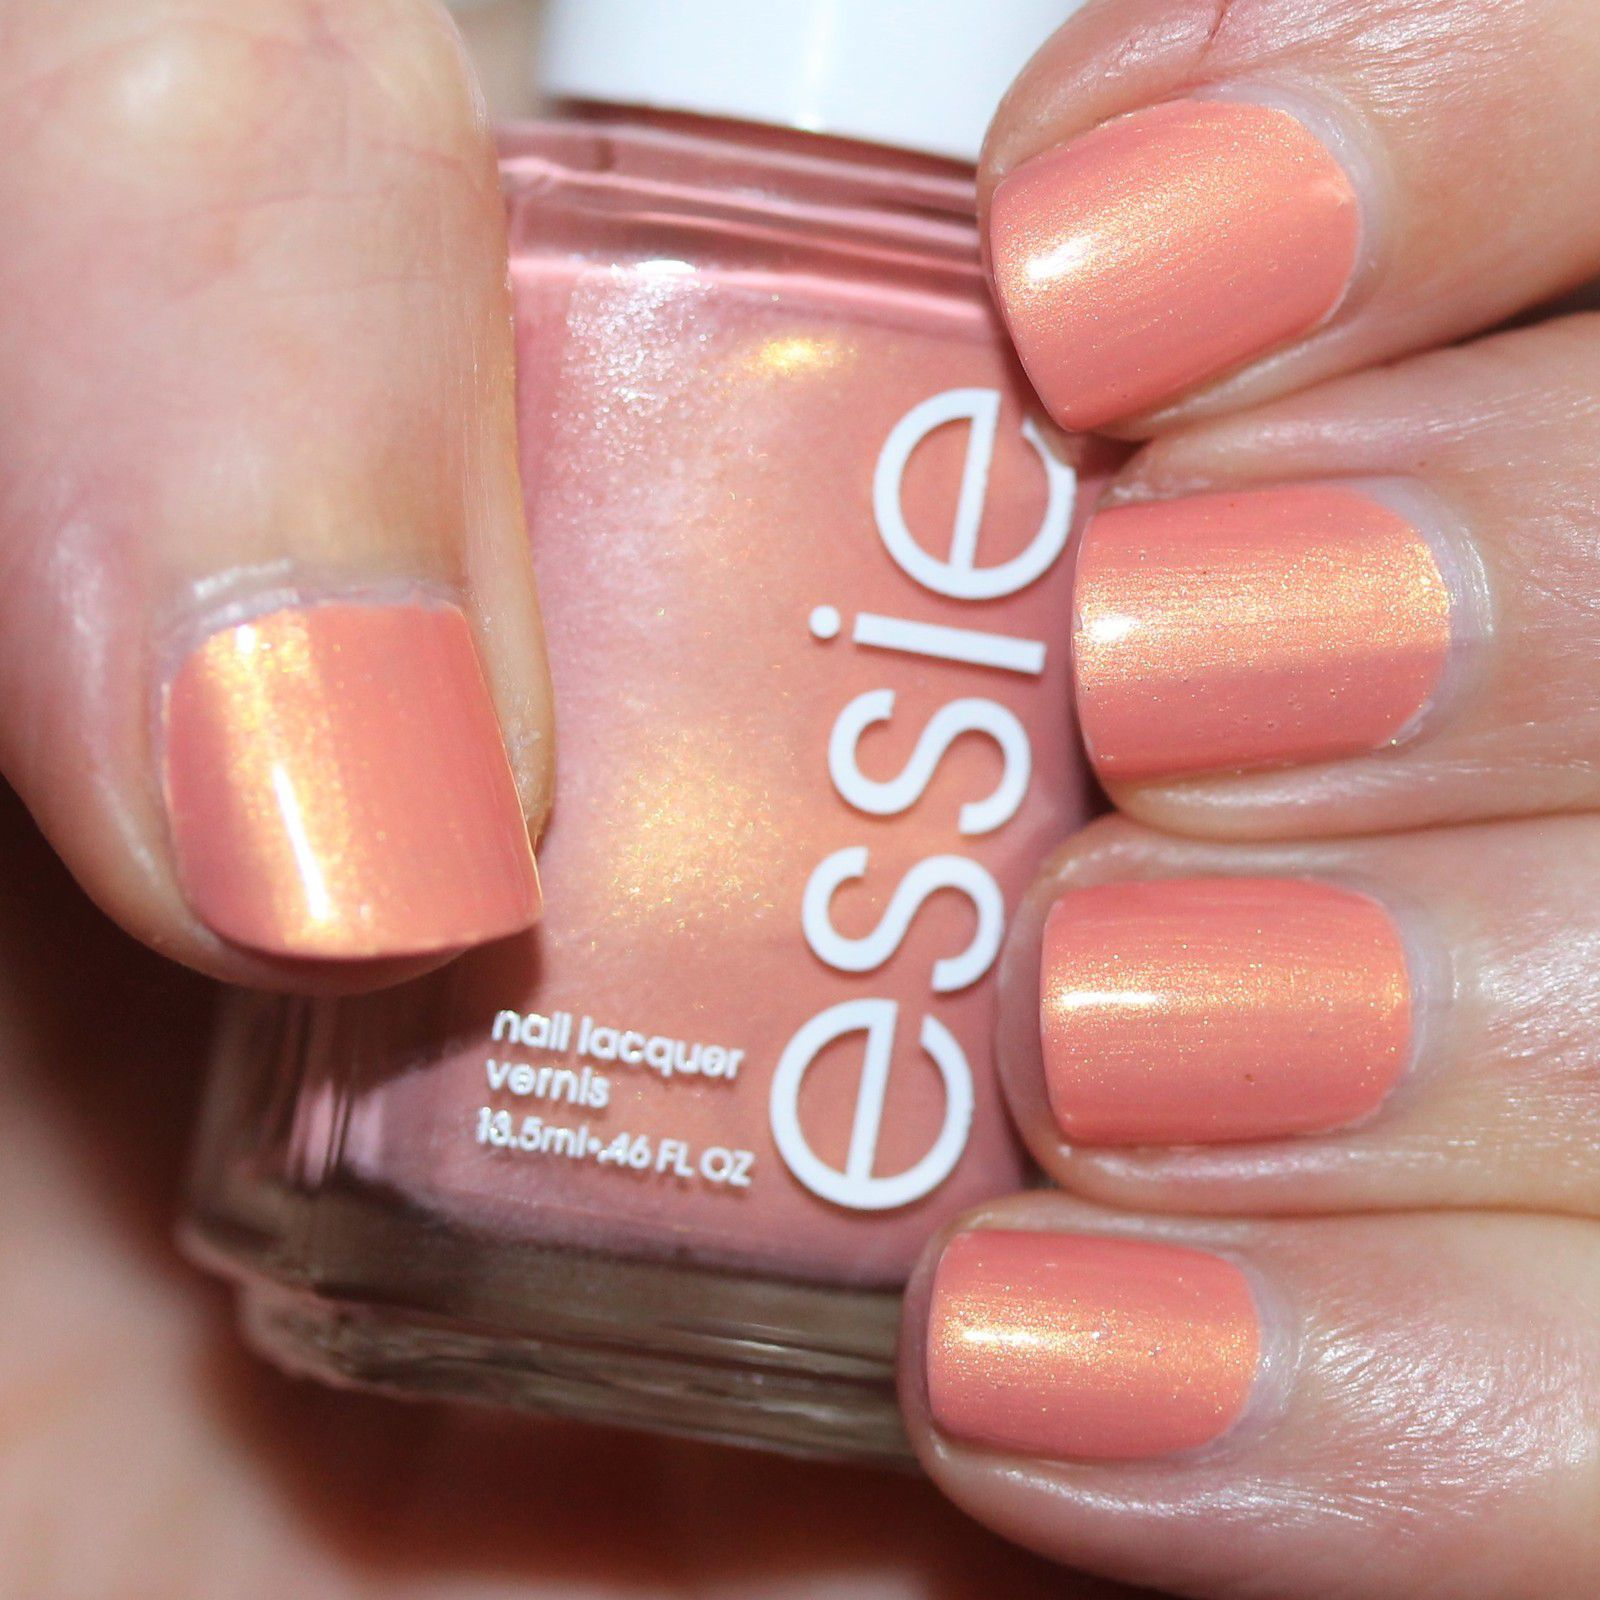 Essie Protein Base Coat / Essie Reach New Heights / Essie Gel Top Coat